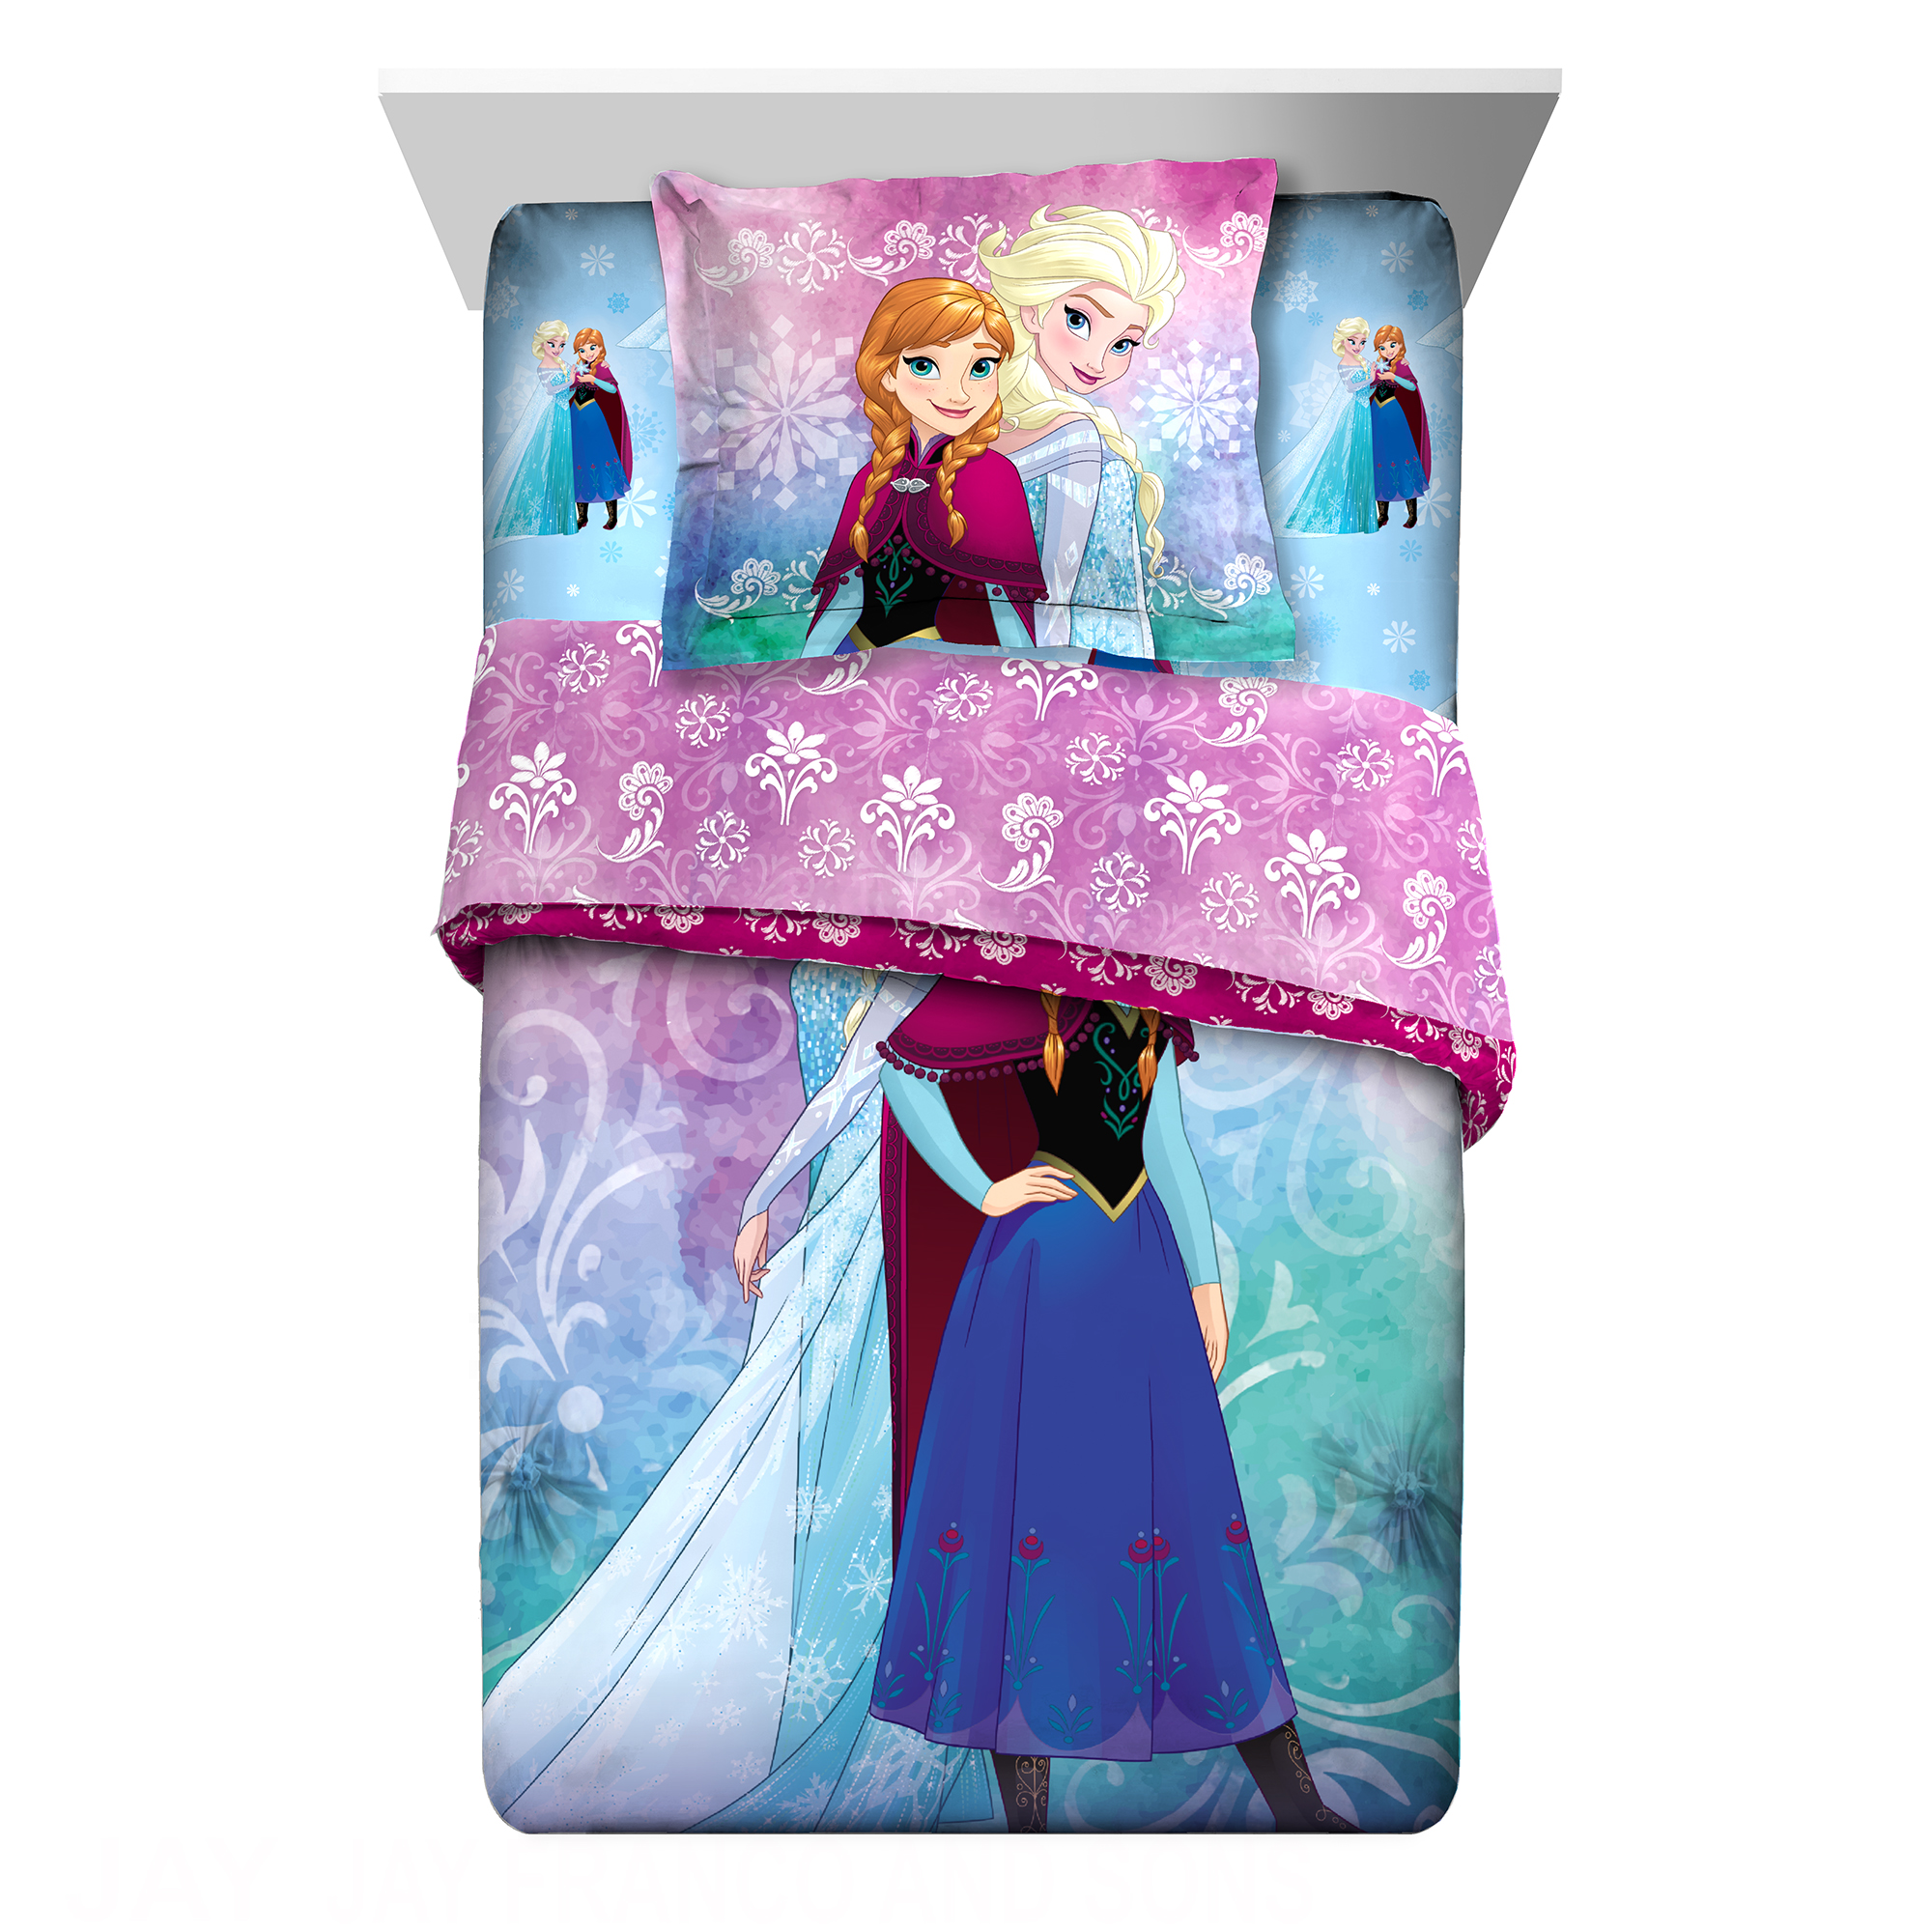 Disney Frozen Nordic Frost Comforter Set with Sham, 2 Piece